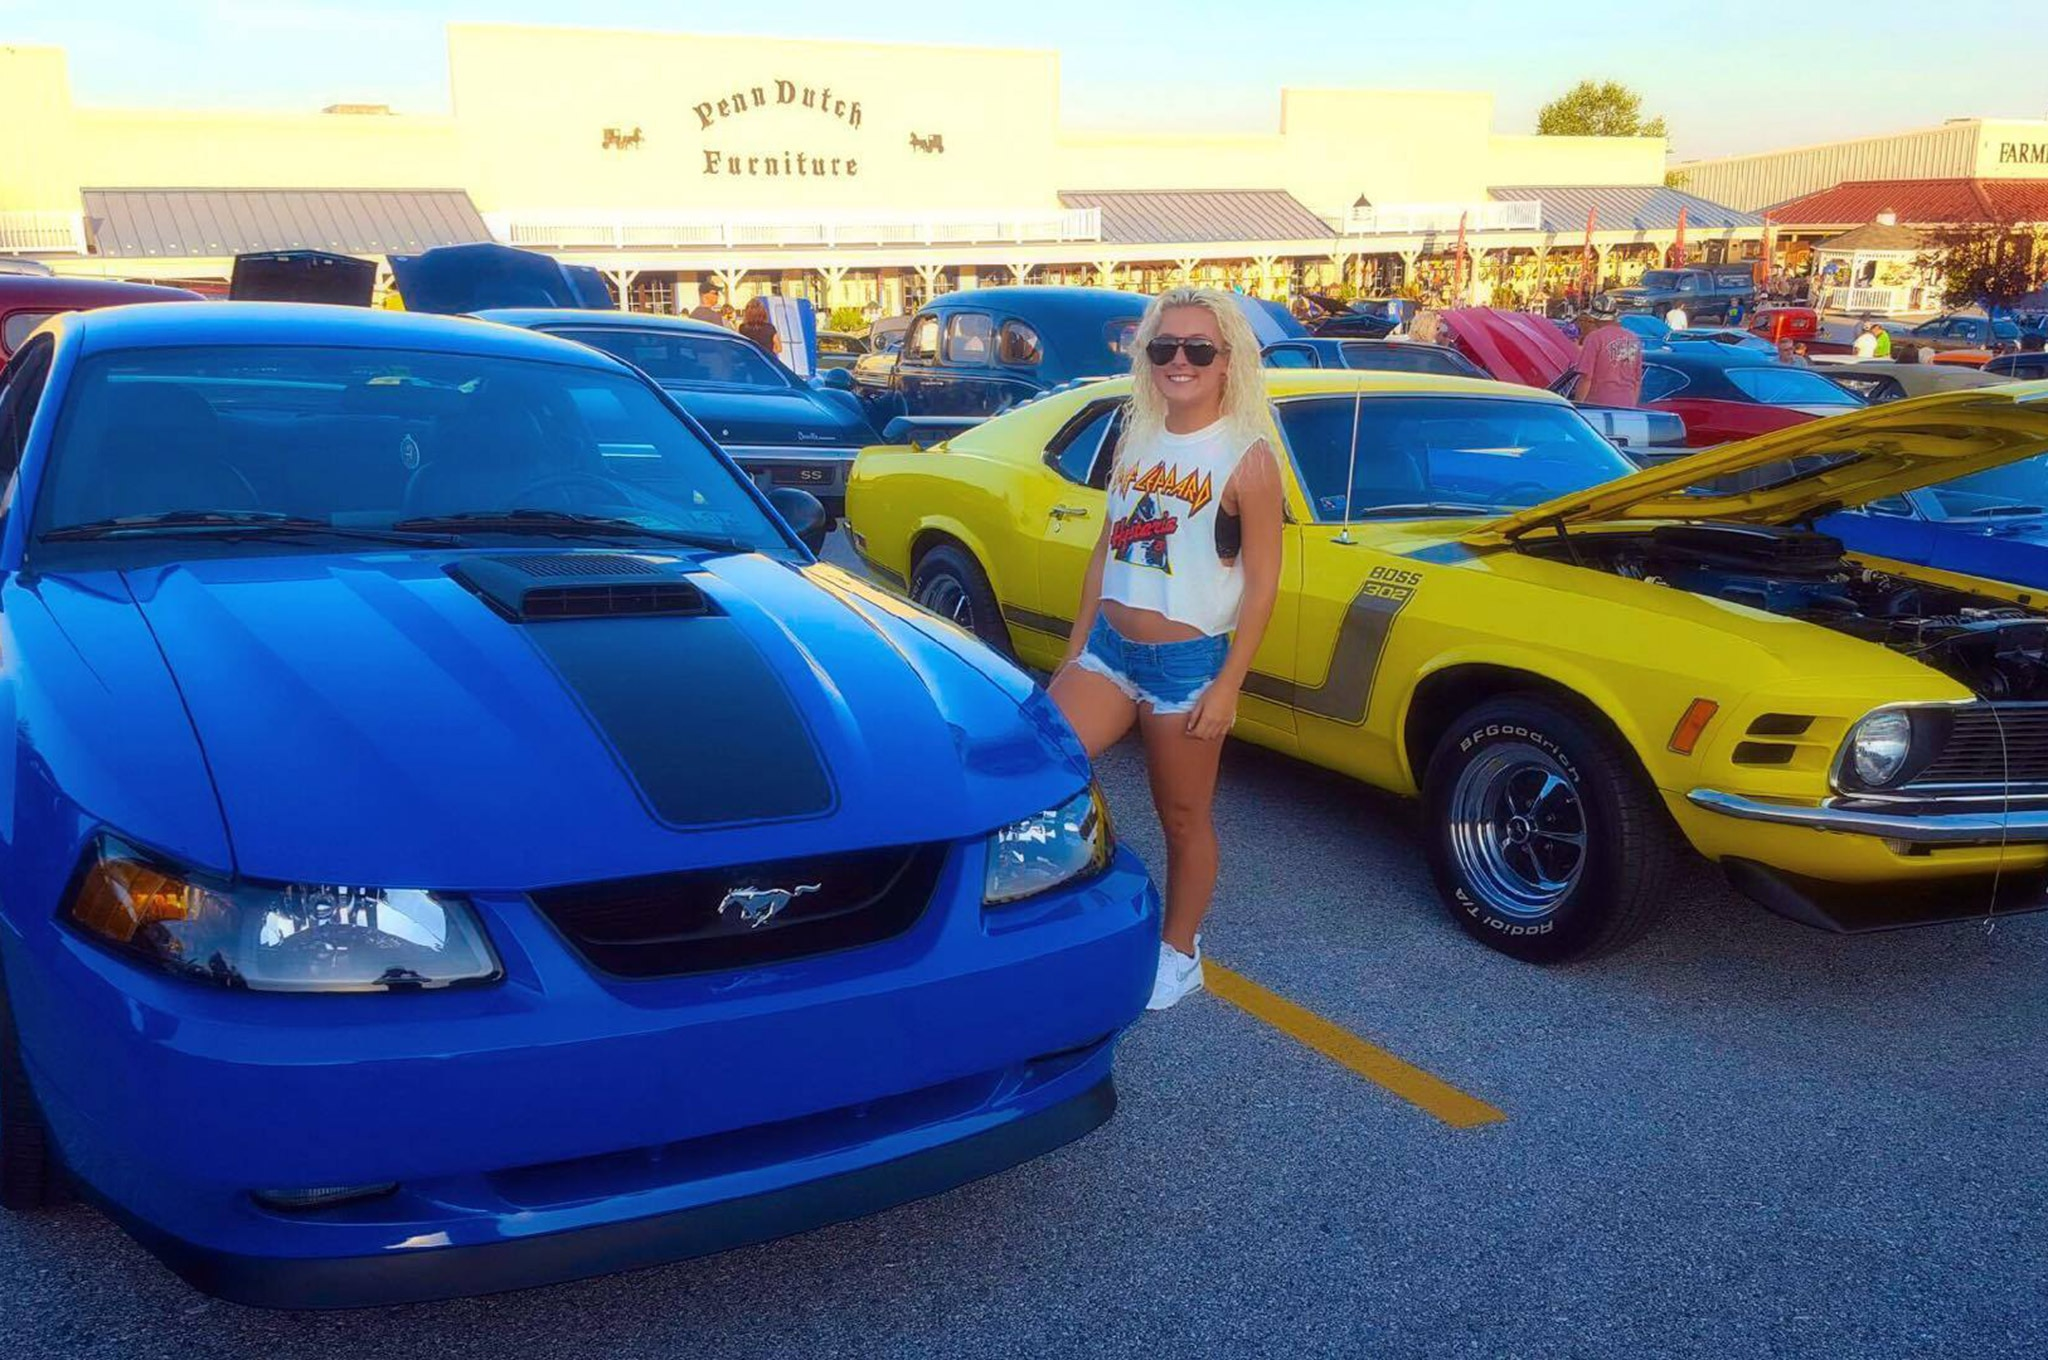 2003 Ford Mustang Mach 1 Azure Blue 018 Photo 224322491 Mustang Girl Monday Carlee Shoemaker And Her 2003 Mach 1